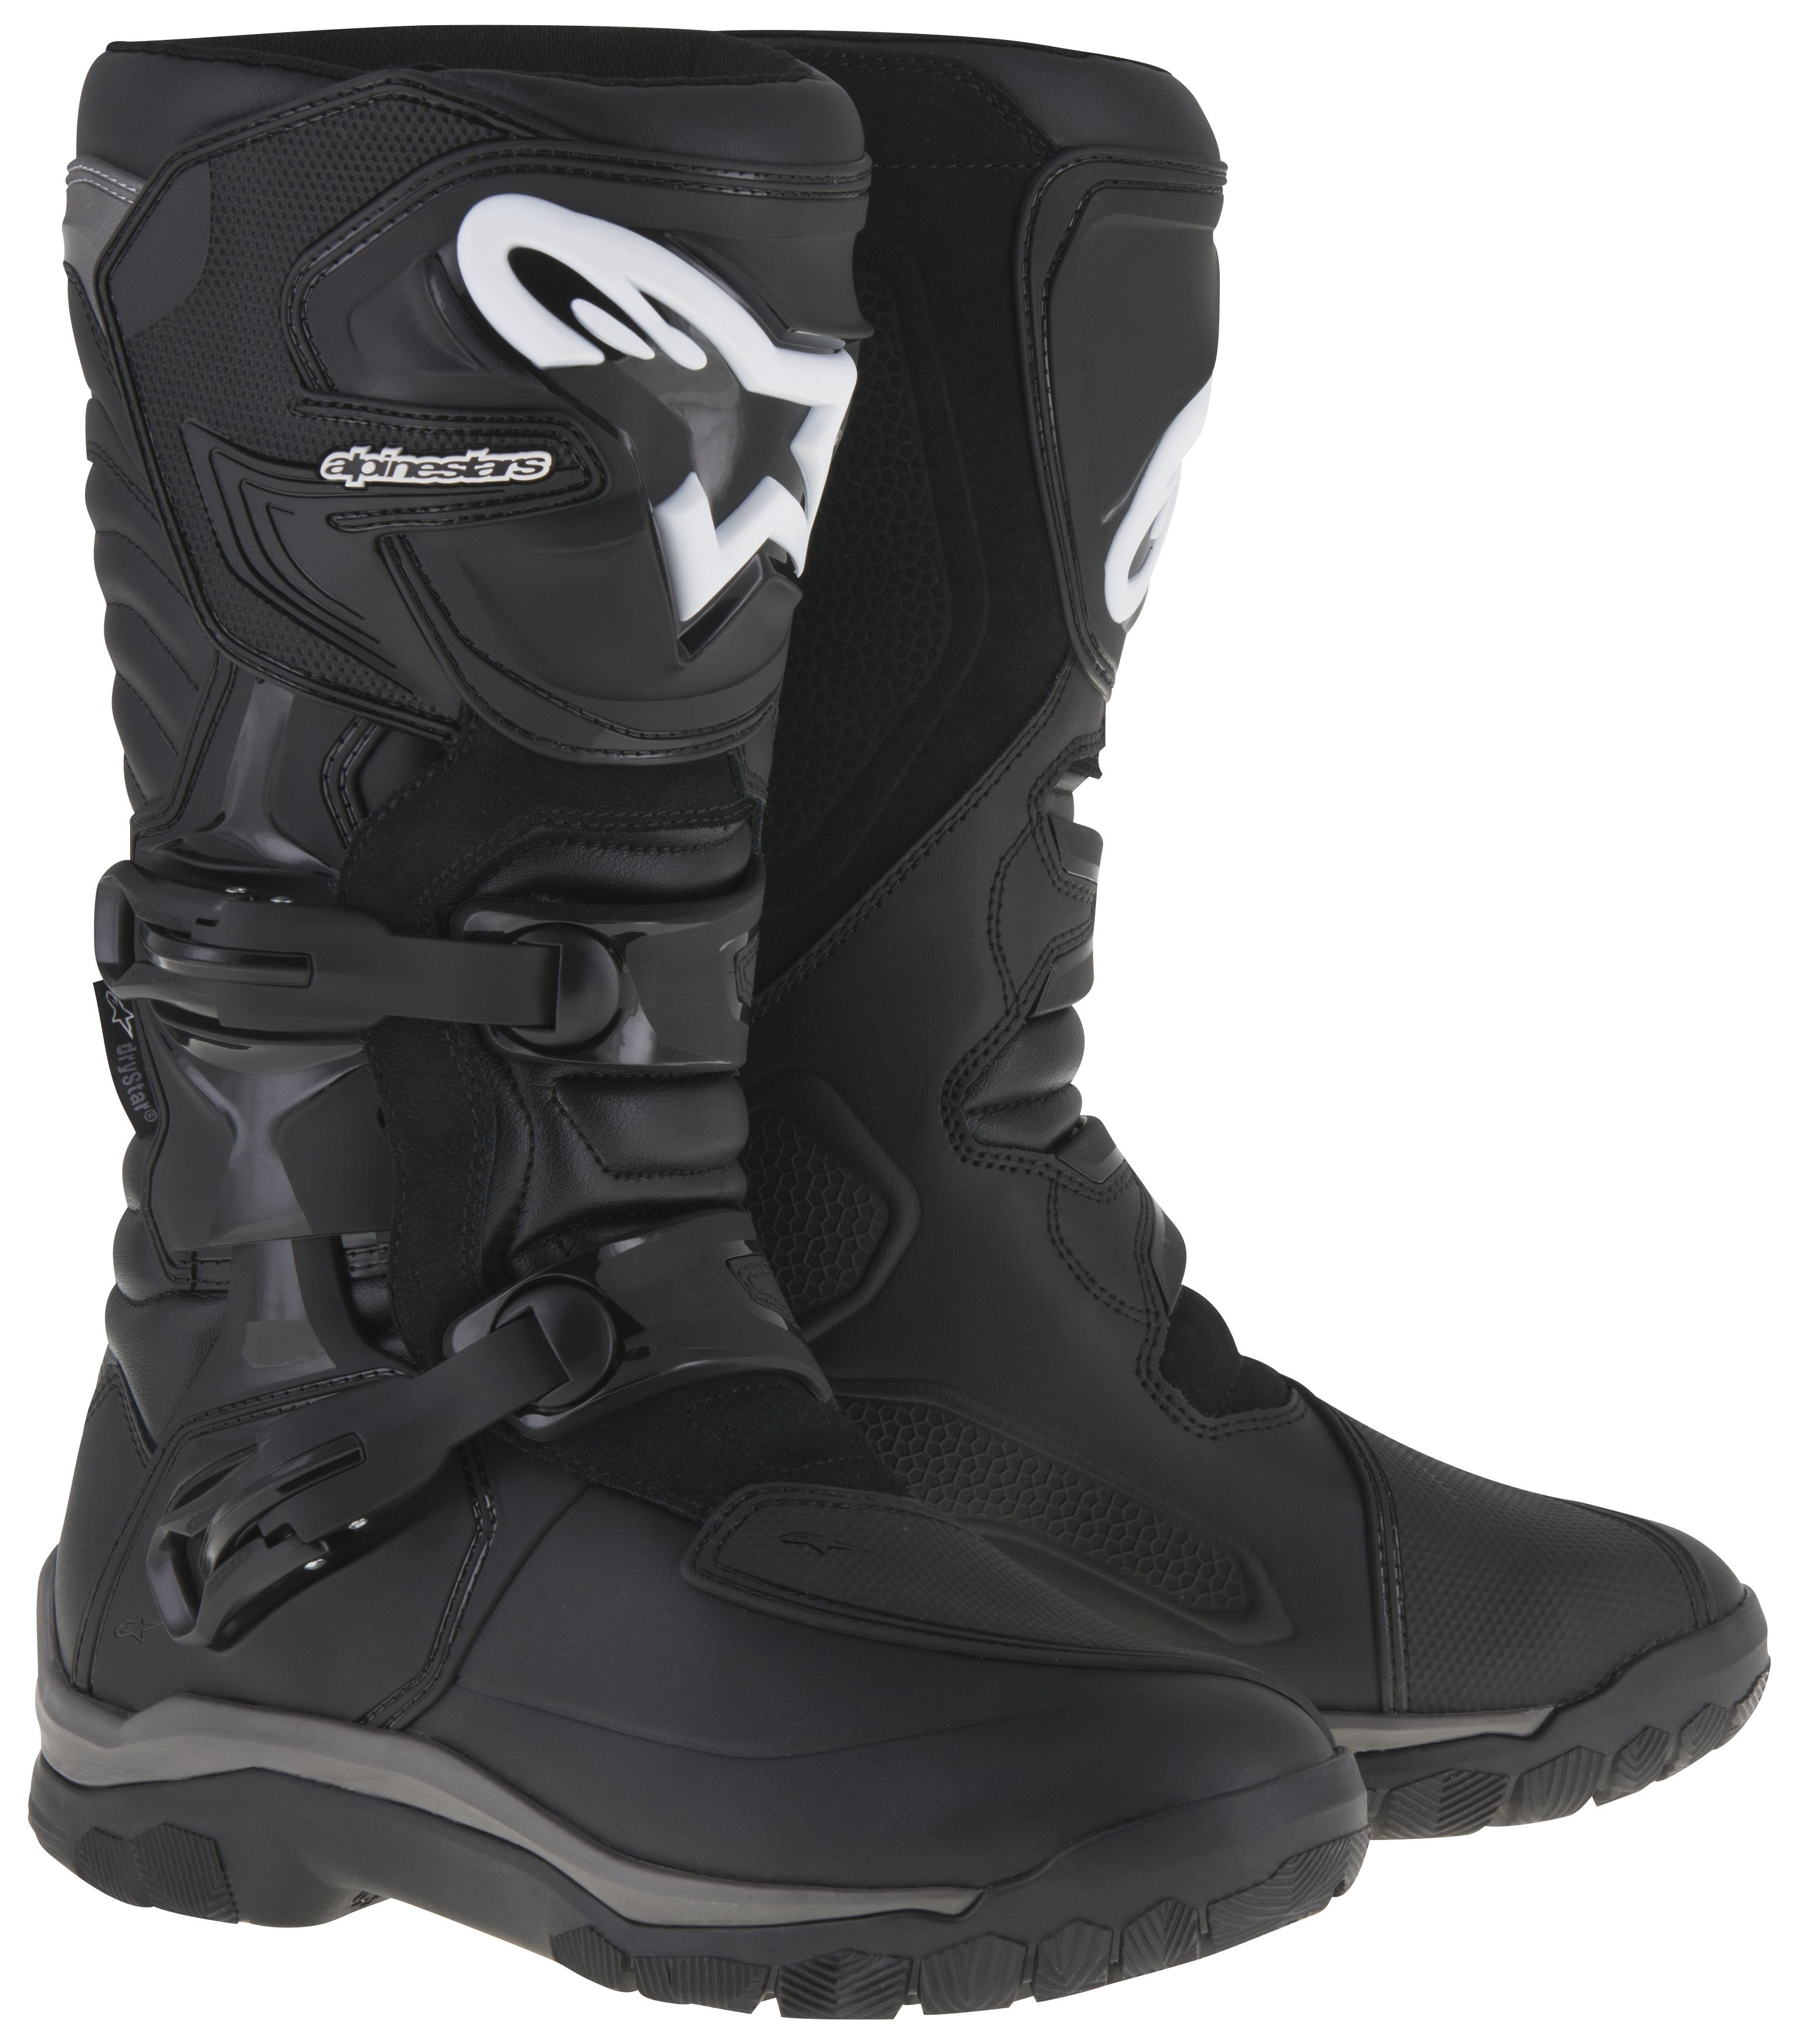 Alpinestars Touring Boots Review